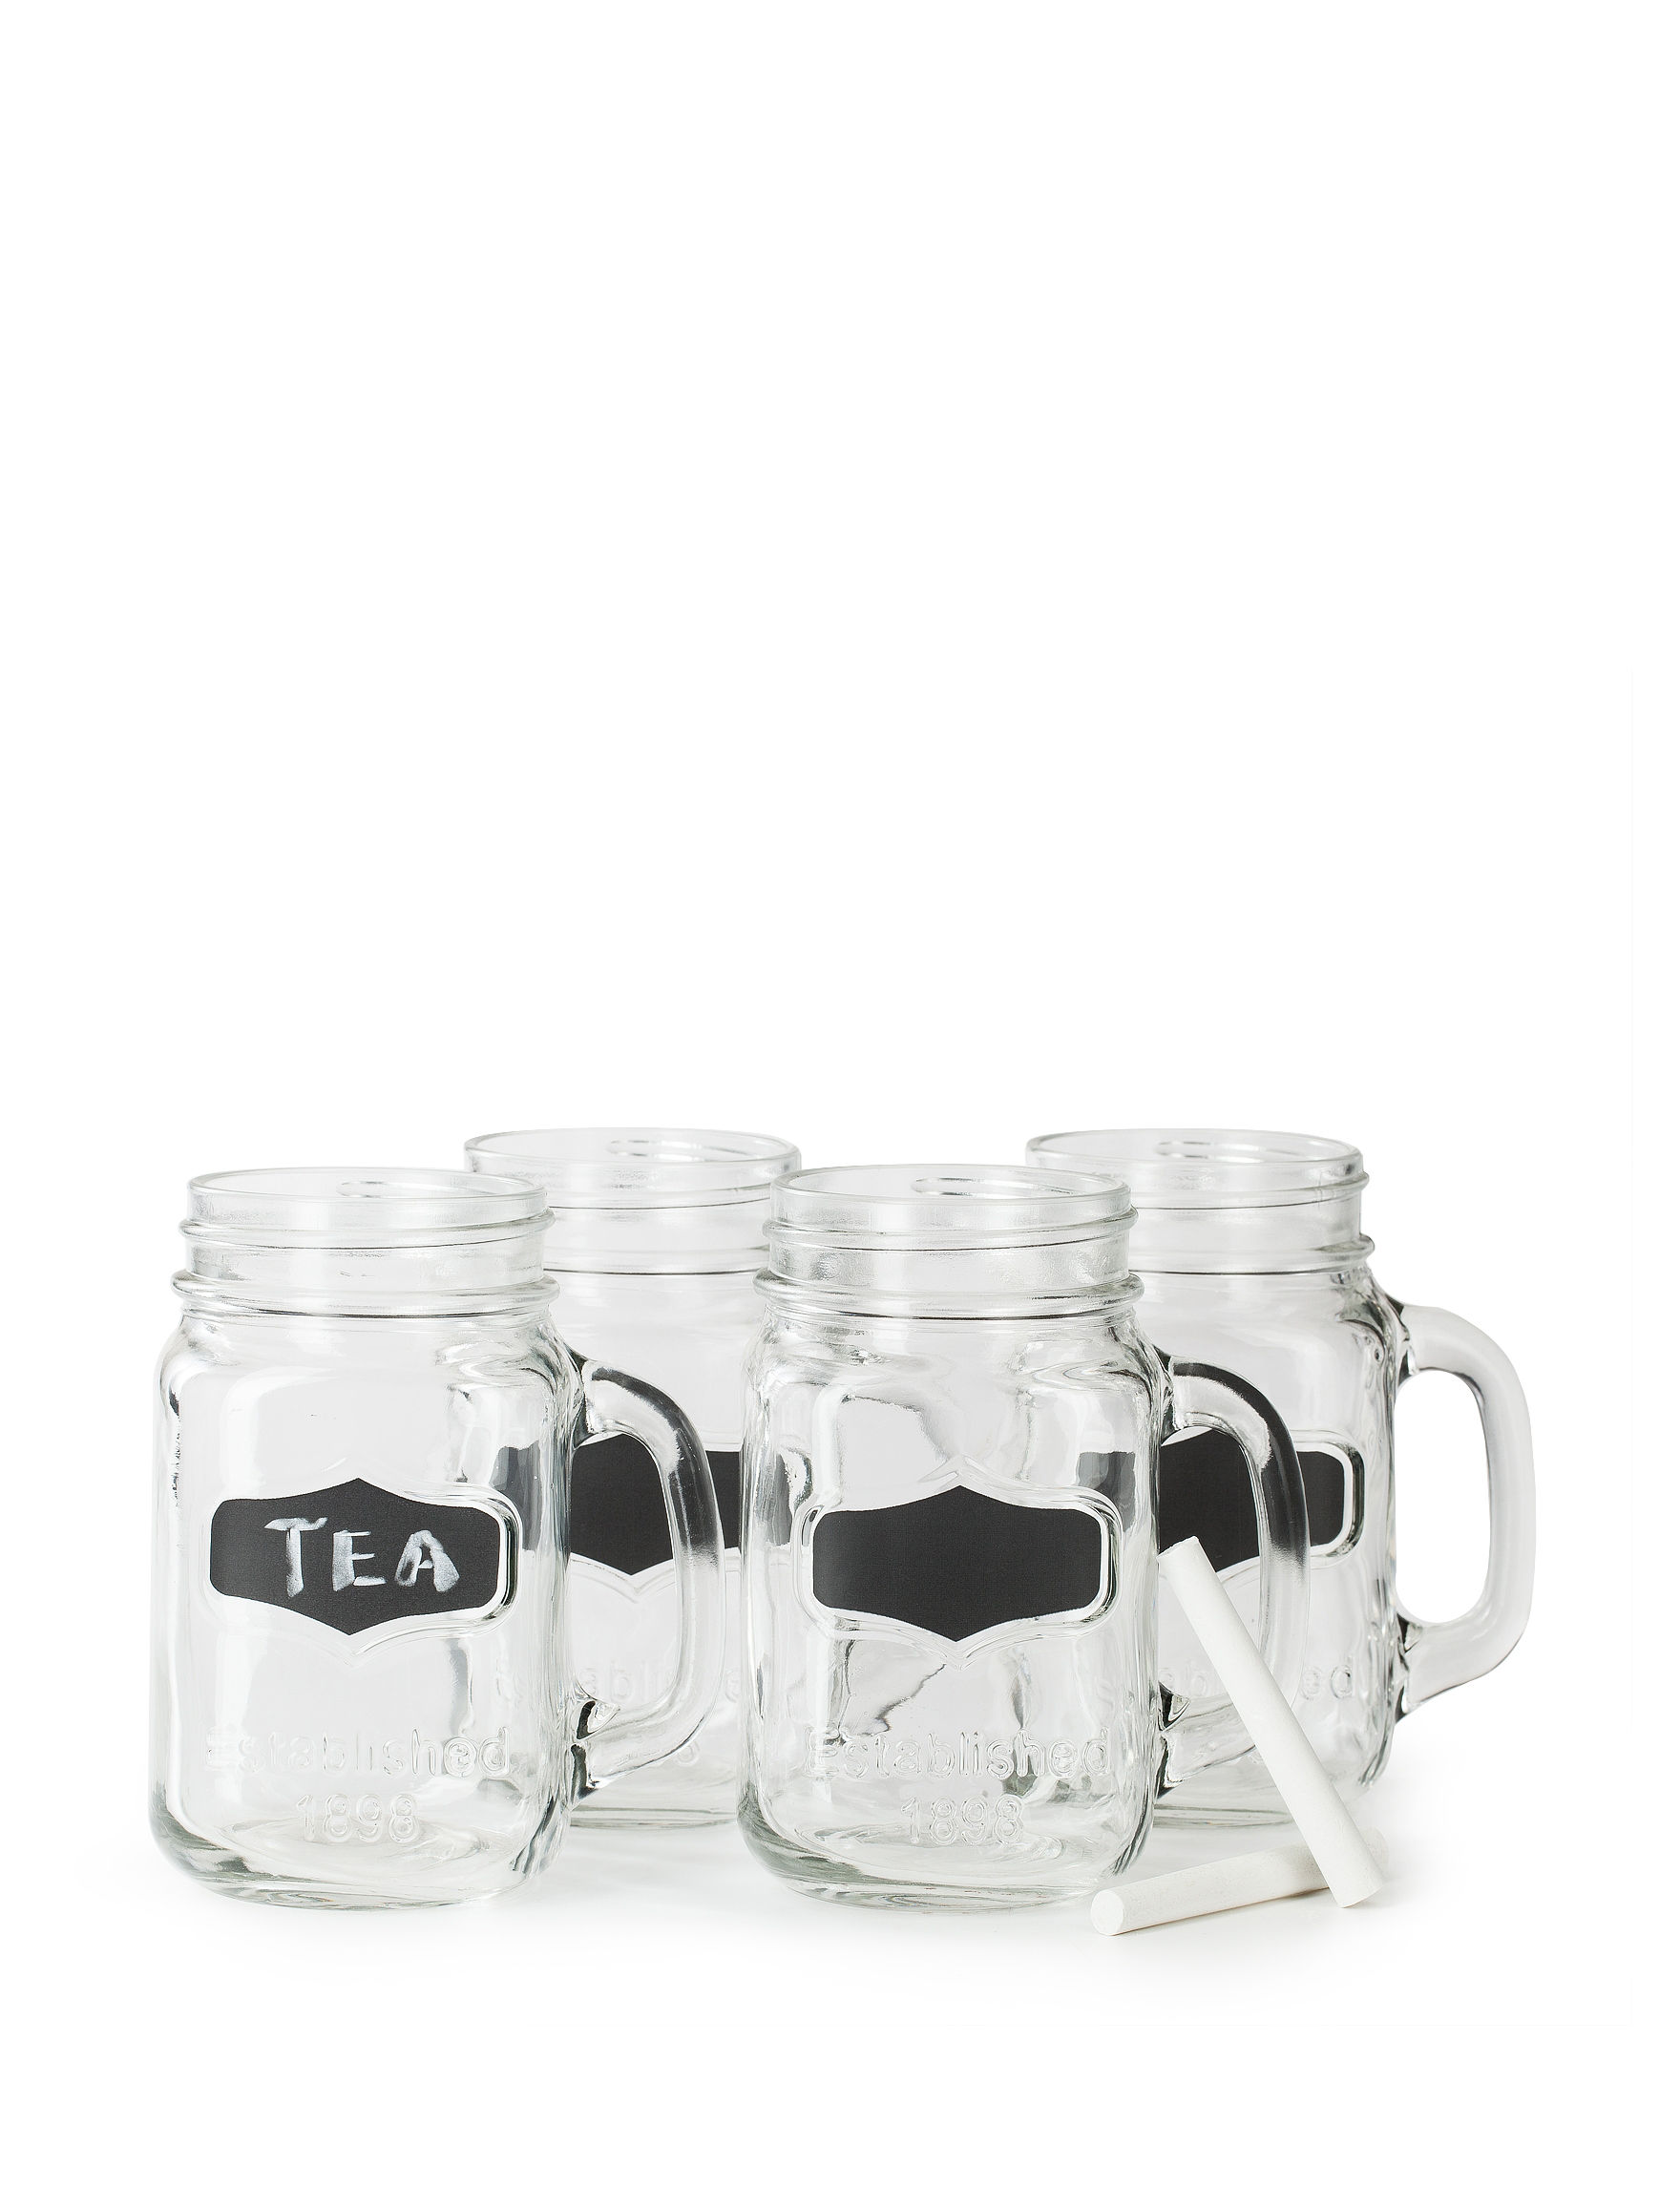 Circle Glass Clear Drinkware Sets Drinkware